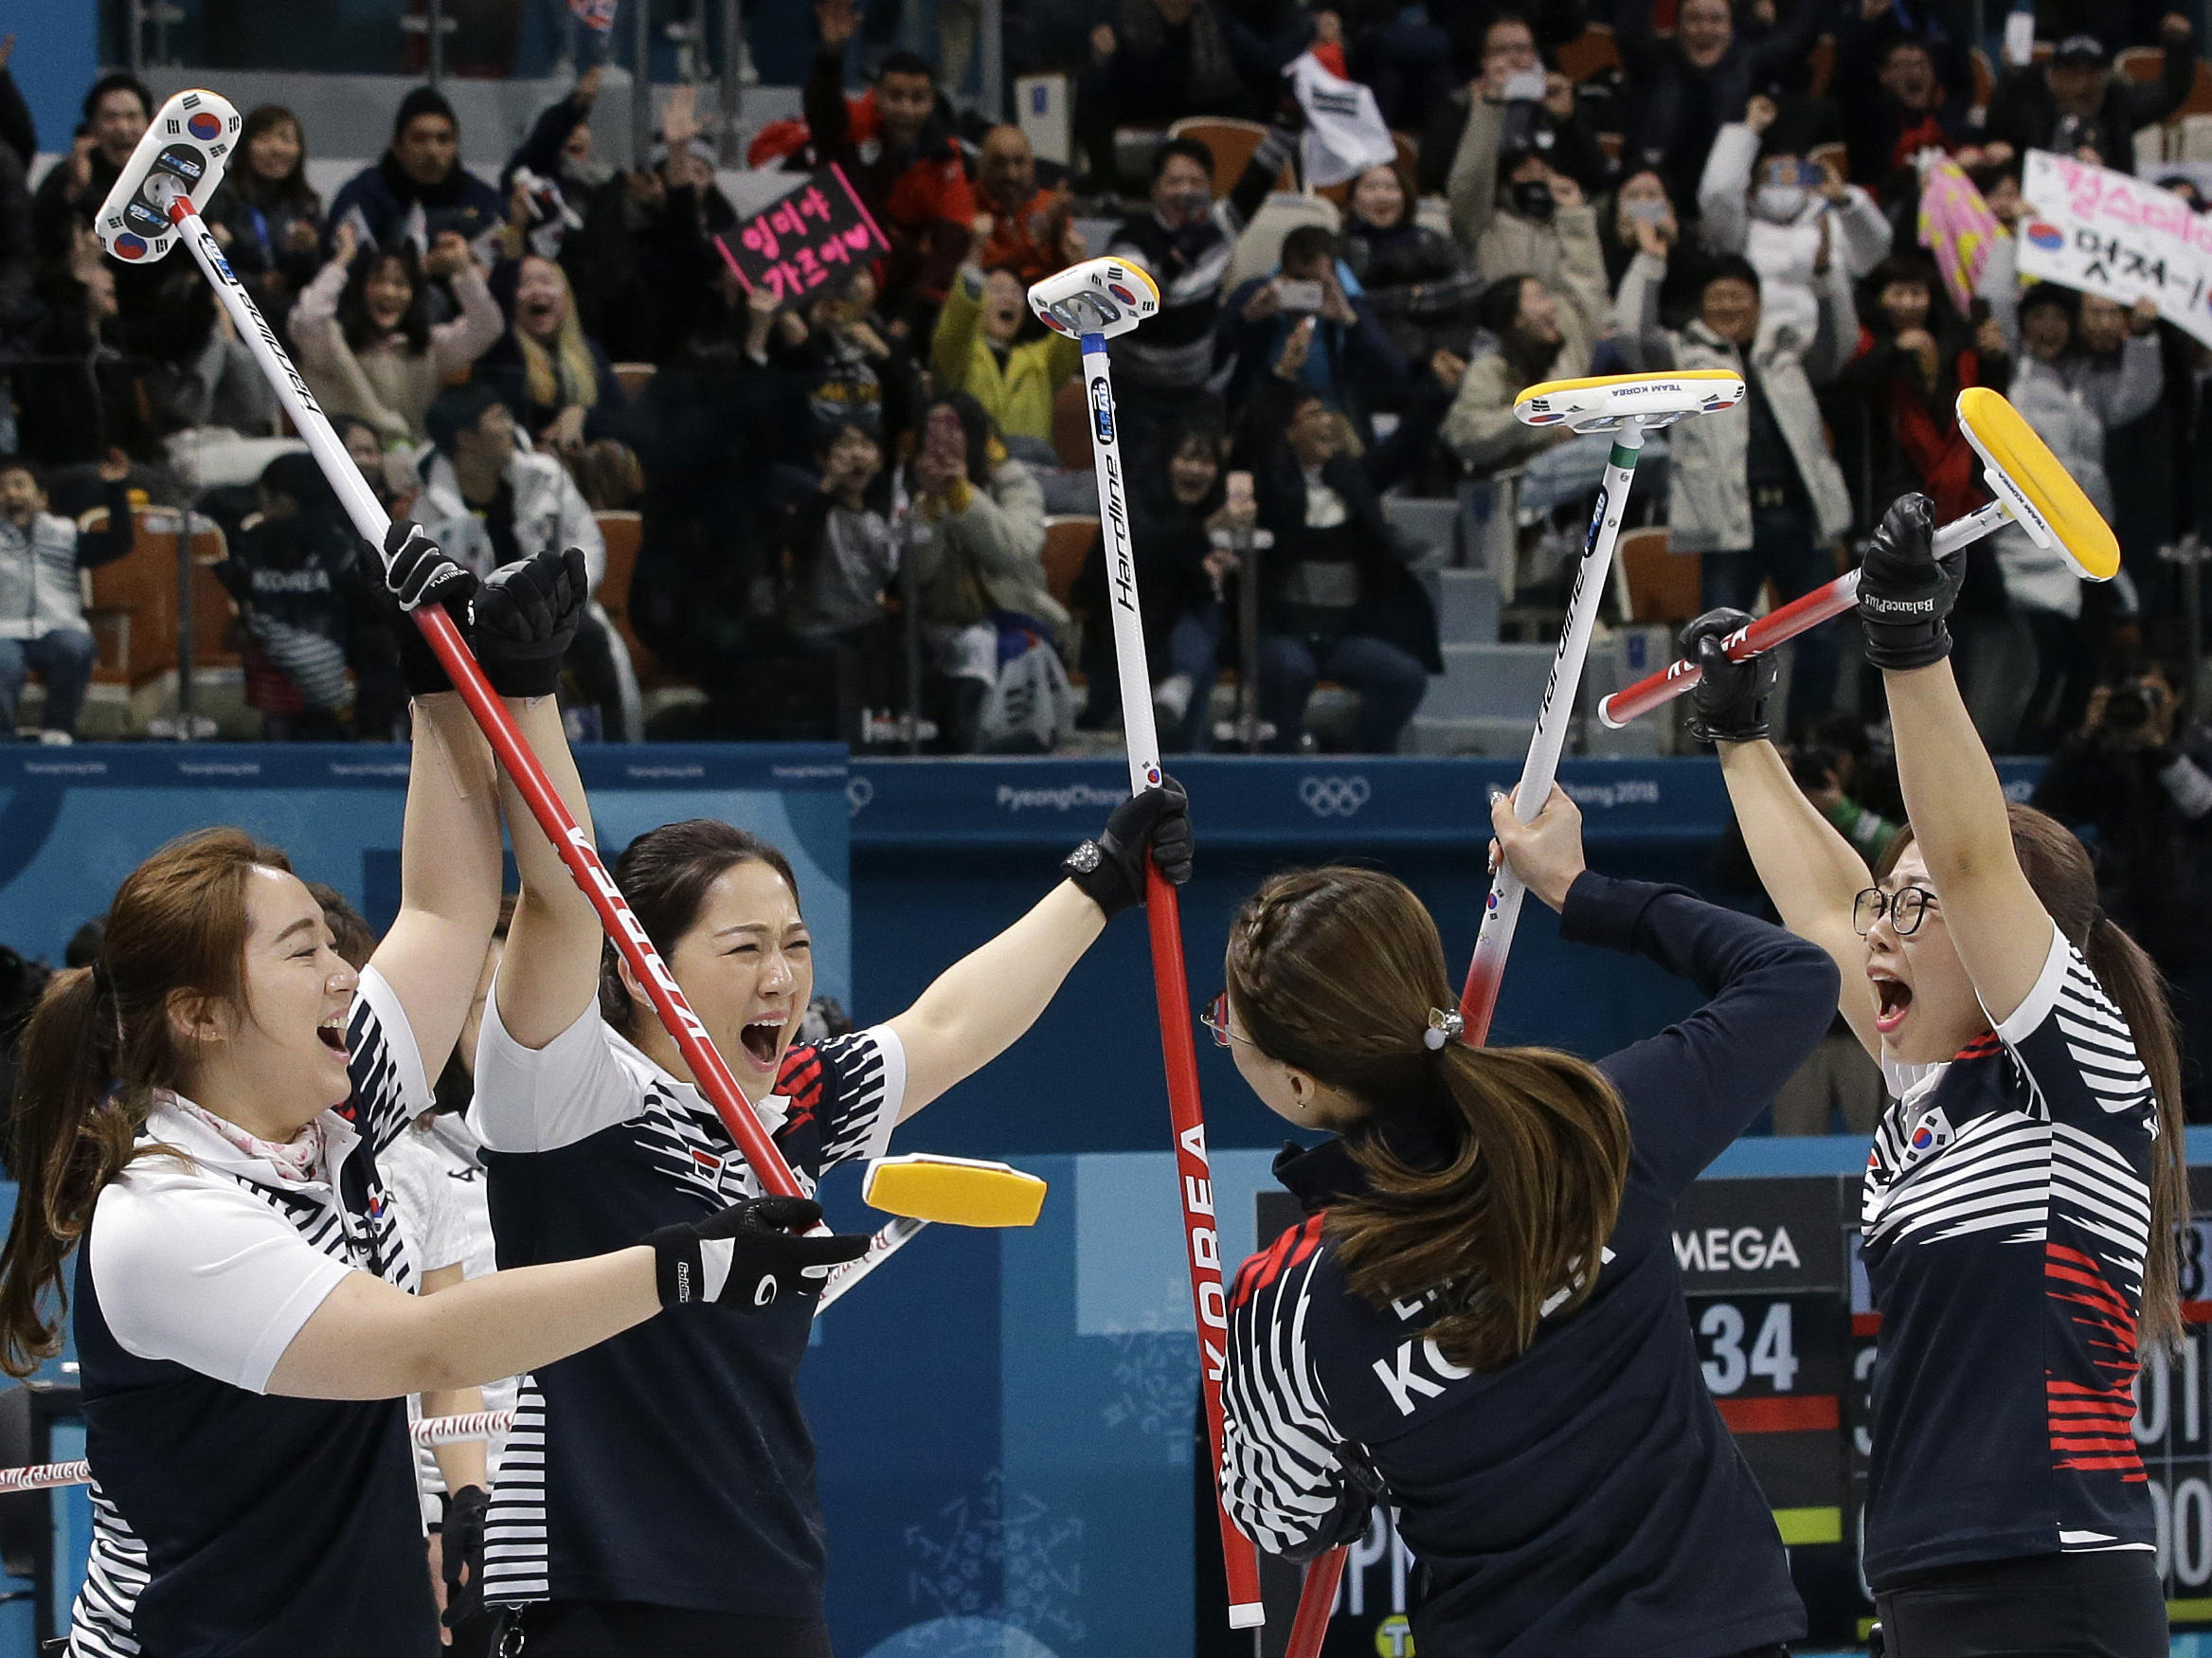 South Korean Women Win Thriller In Curling, Putting ...